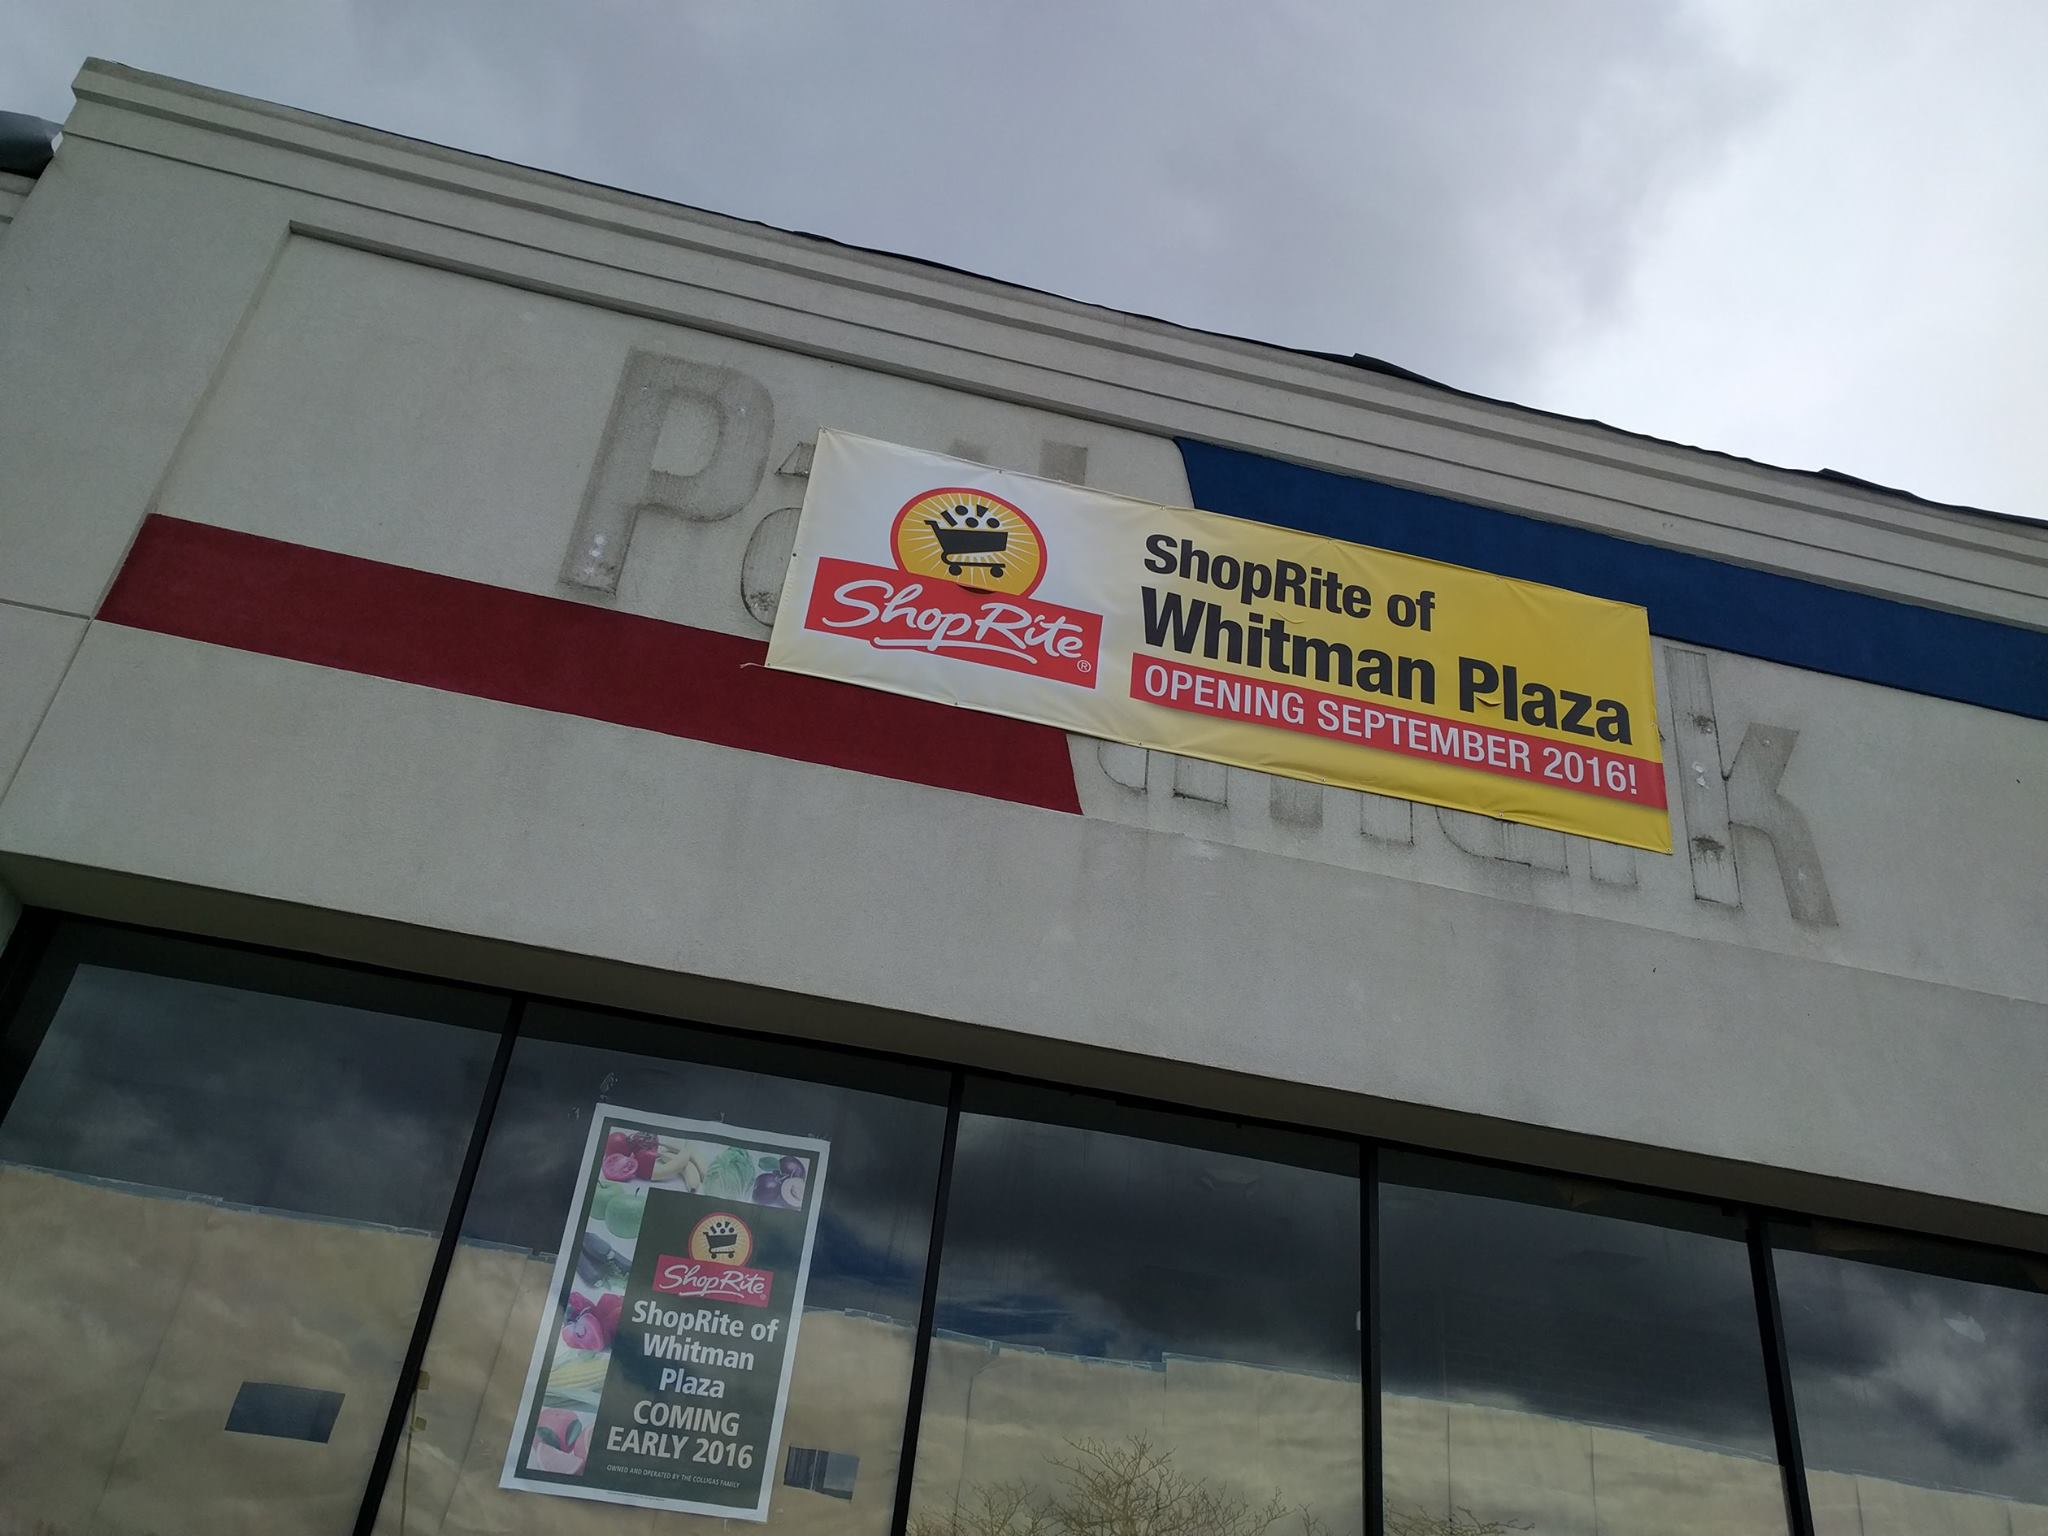 Pennsport philadelight coffeesouth philly shoprite of whitman plaza opens september 2016 hiring falaconquin